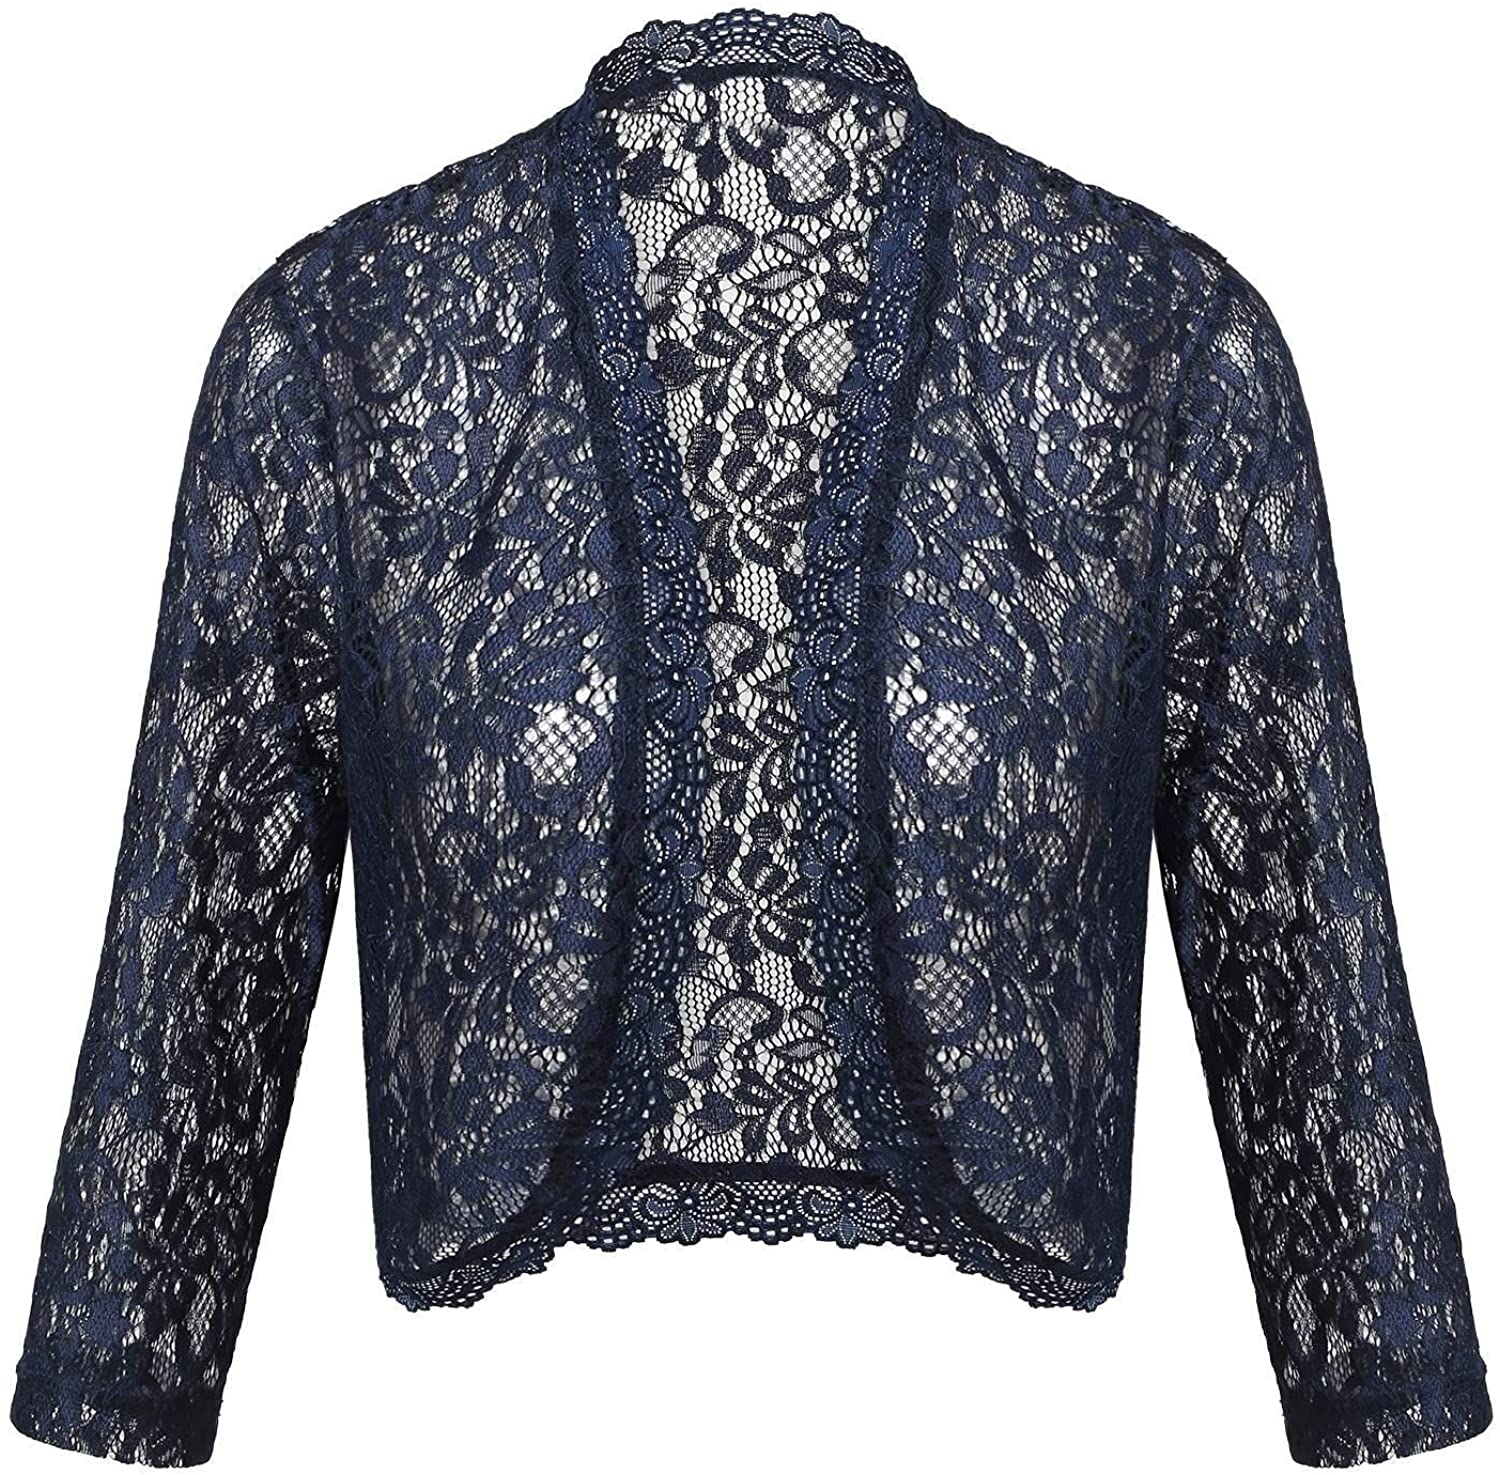 ThinIce Women's Lace Bolero Shrug 3/4 Sleeve See Through Wedding Cardigan Jacket